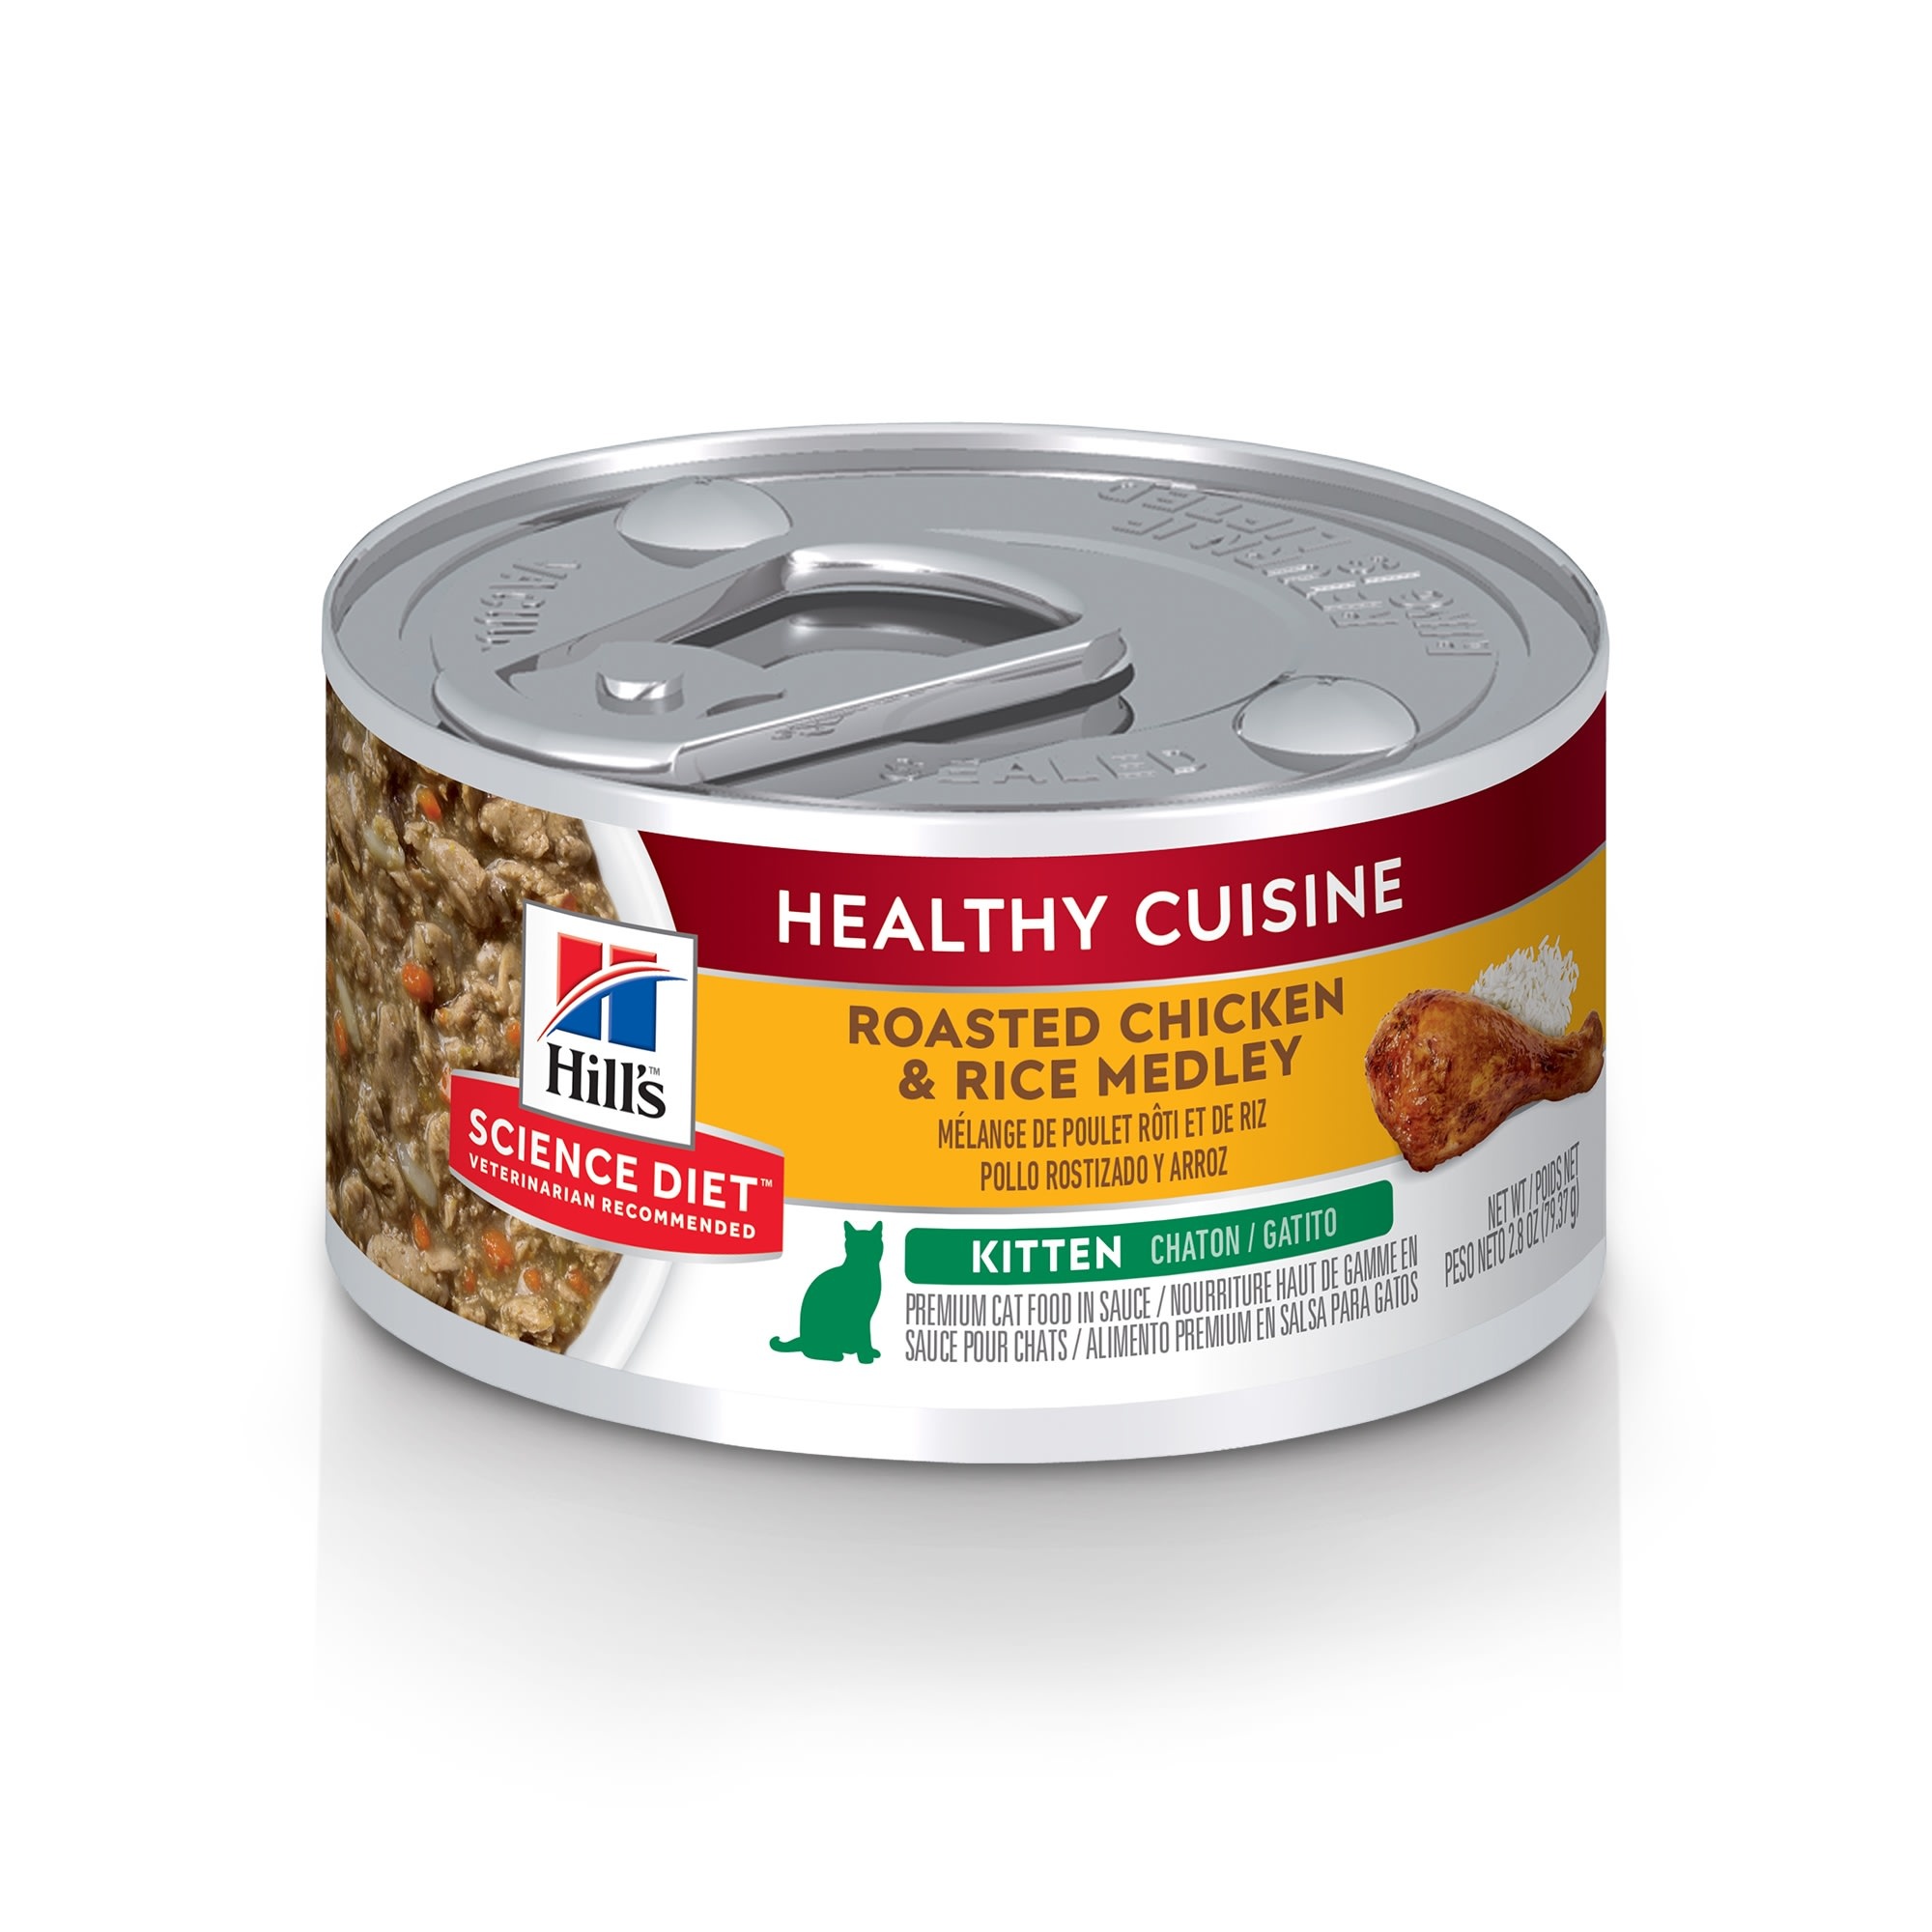 hills science diet canned cat food pate